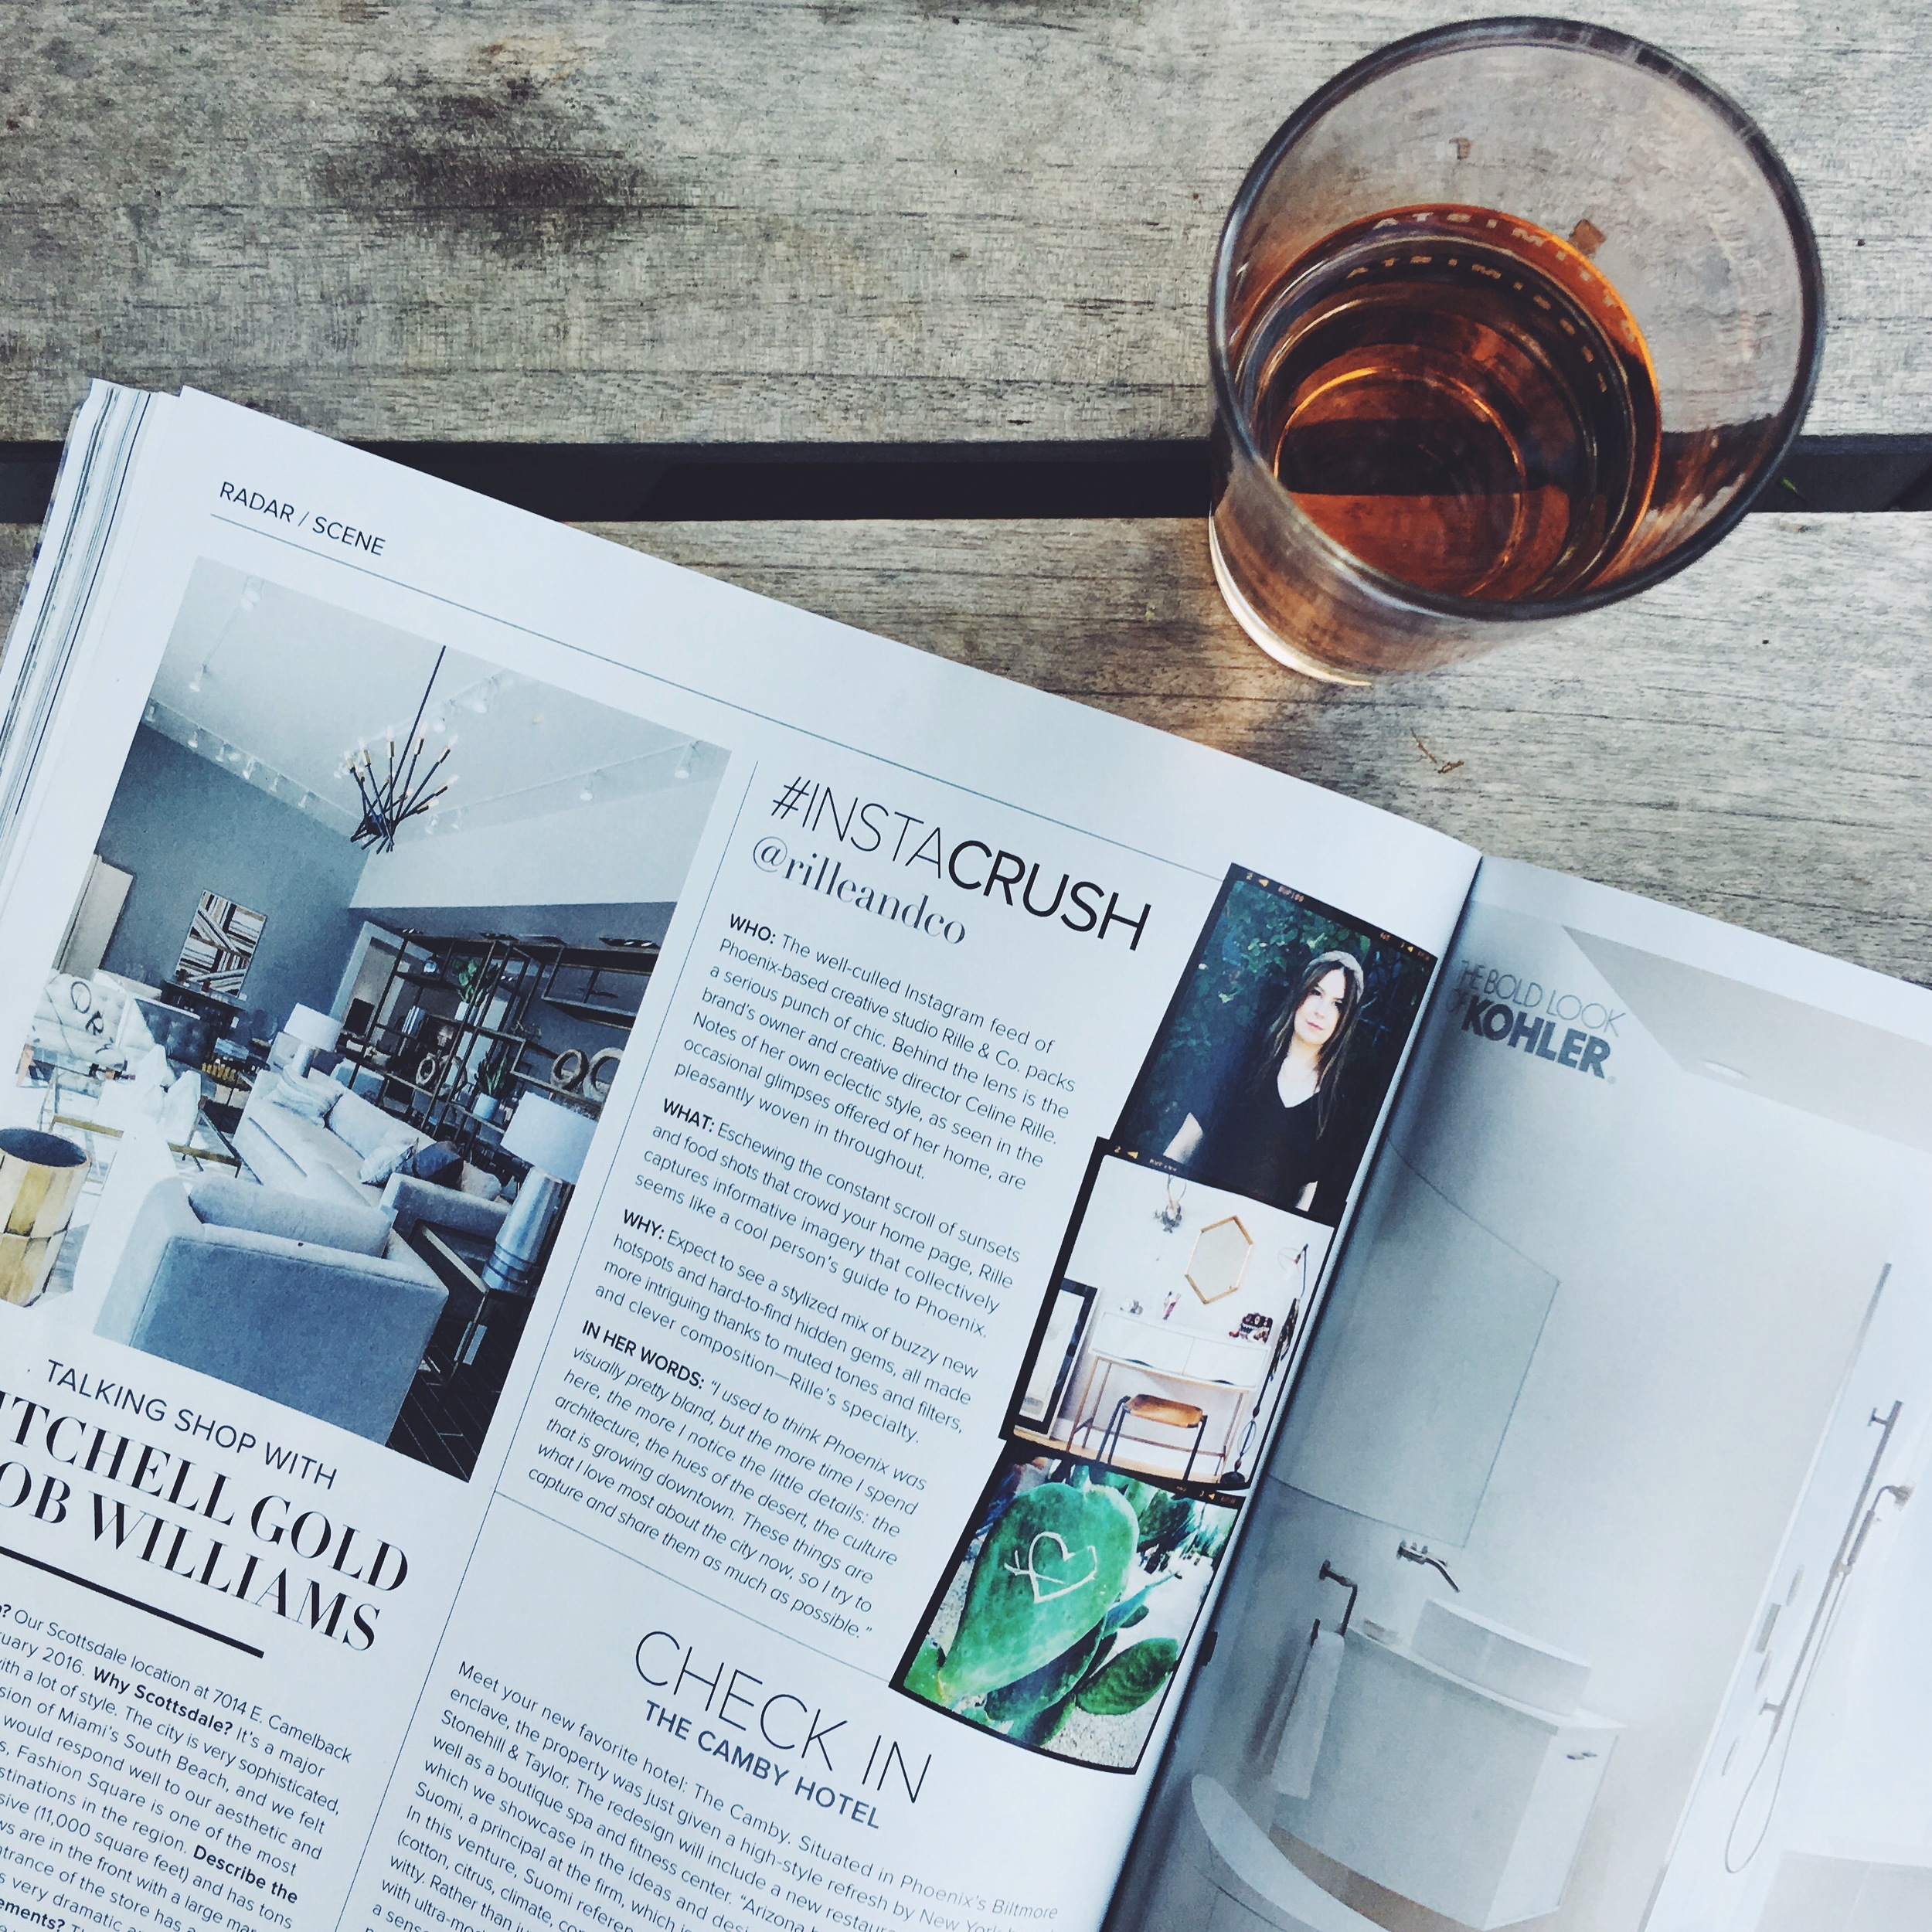 Rille & Co. is Instacrush-worthy in the September issue of Luxe magazine